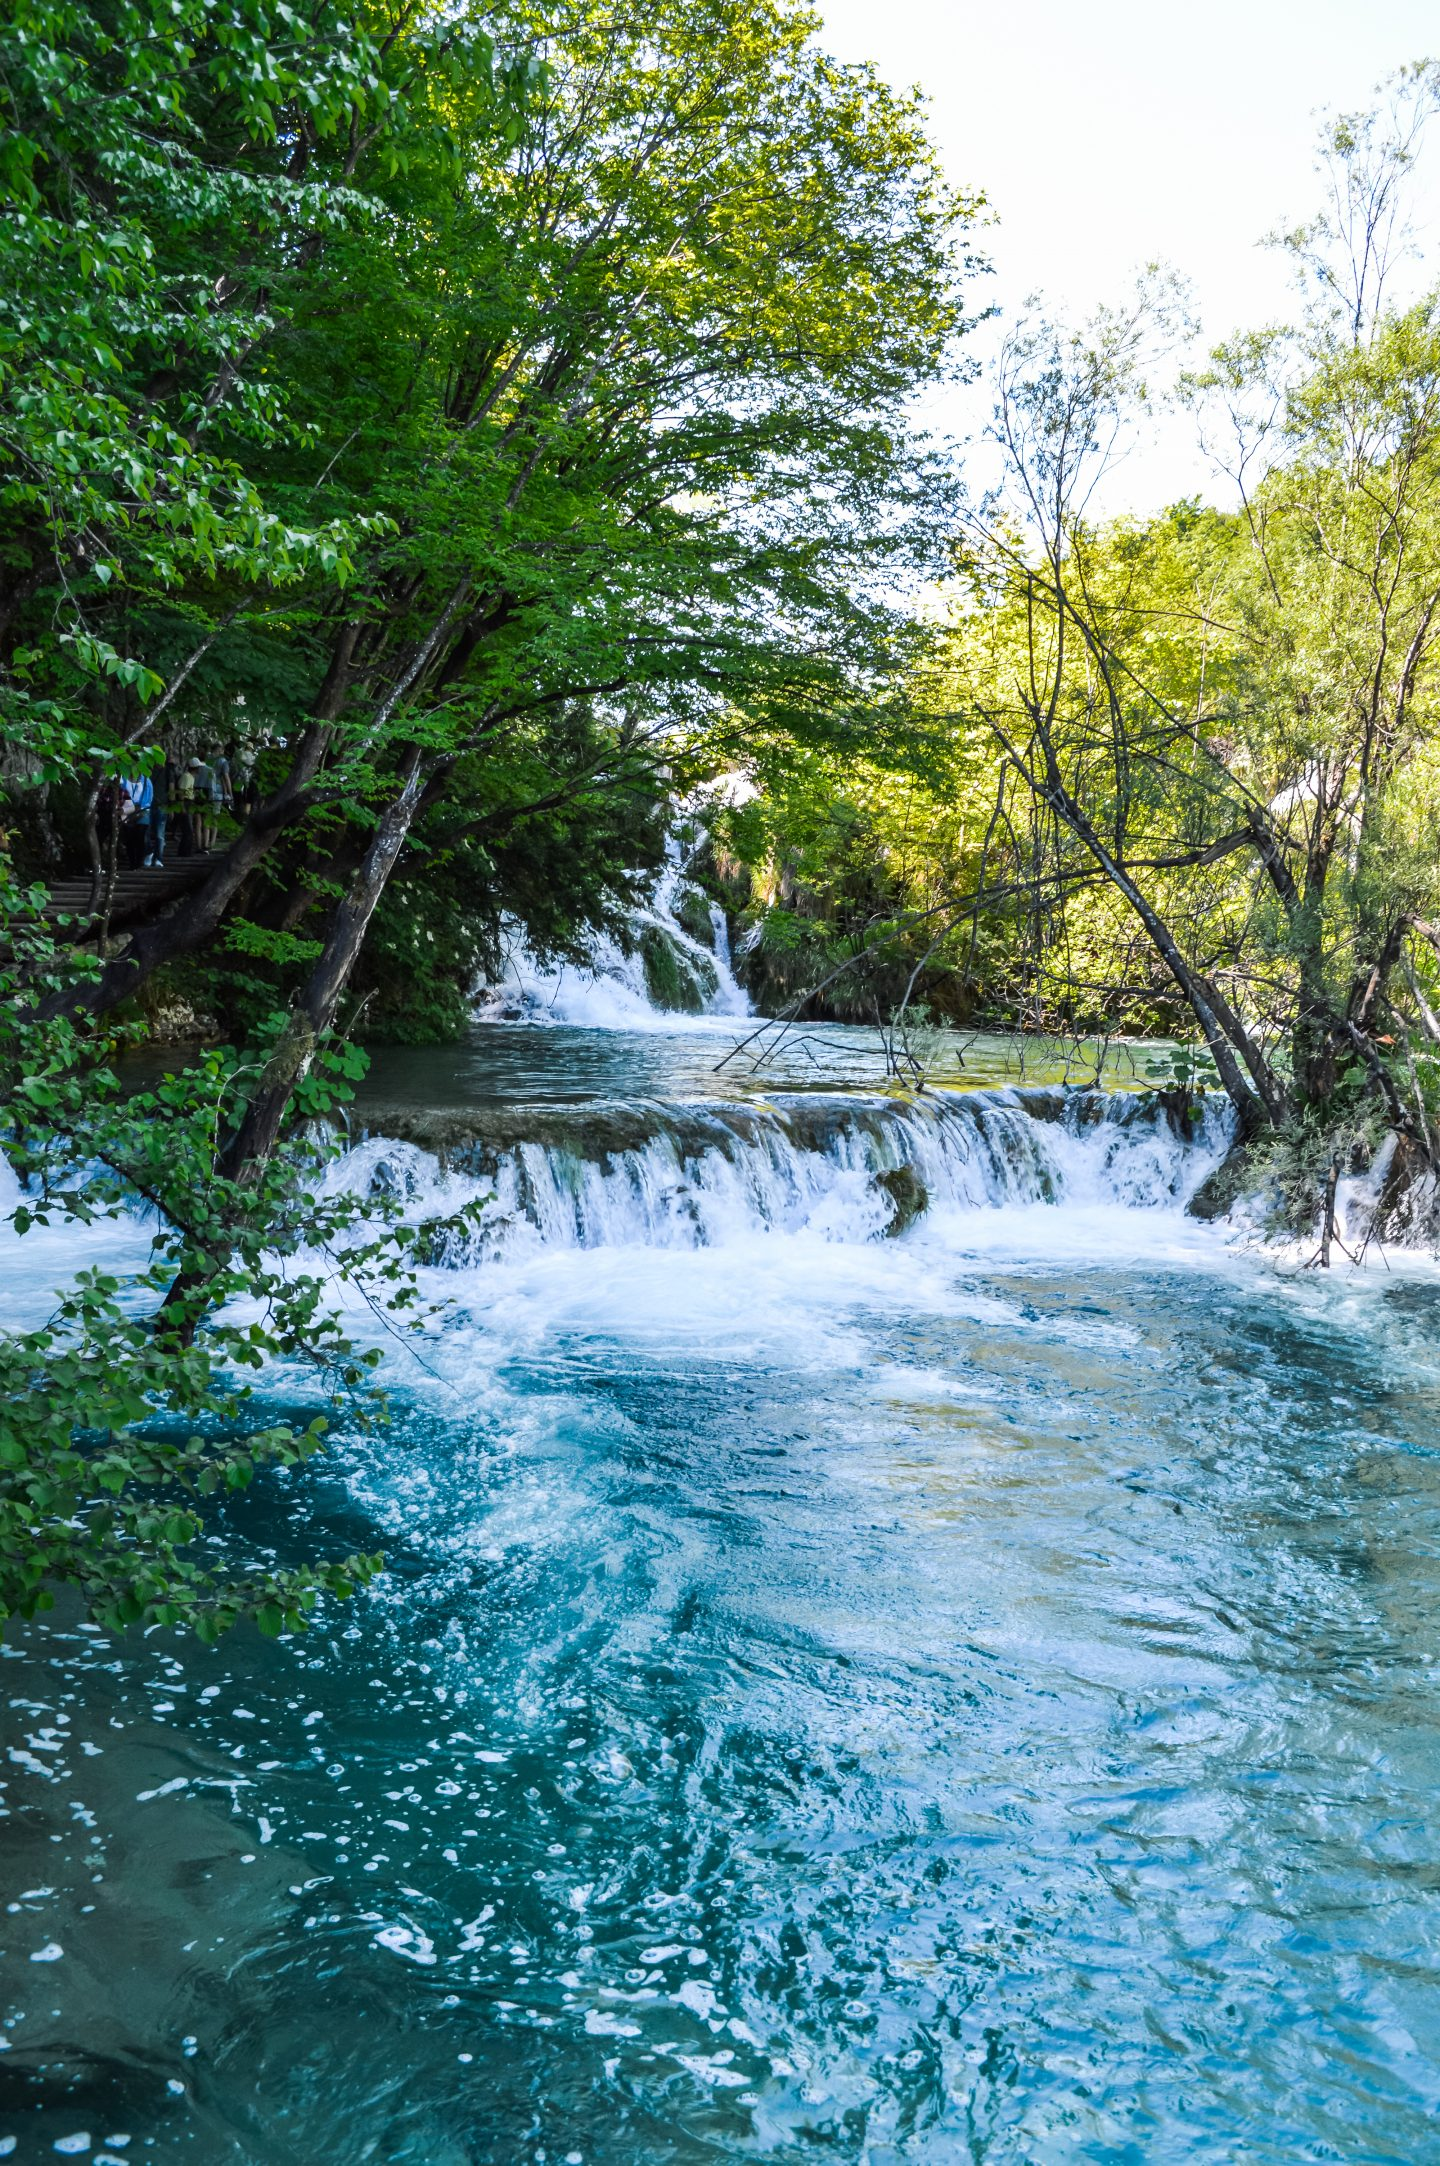 Getting from zagreb to plitvice lakes national park in Croatia